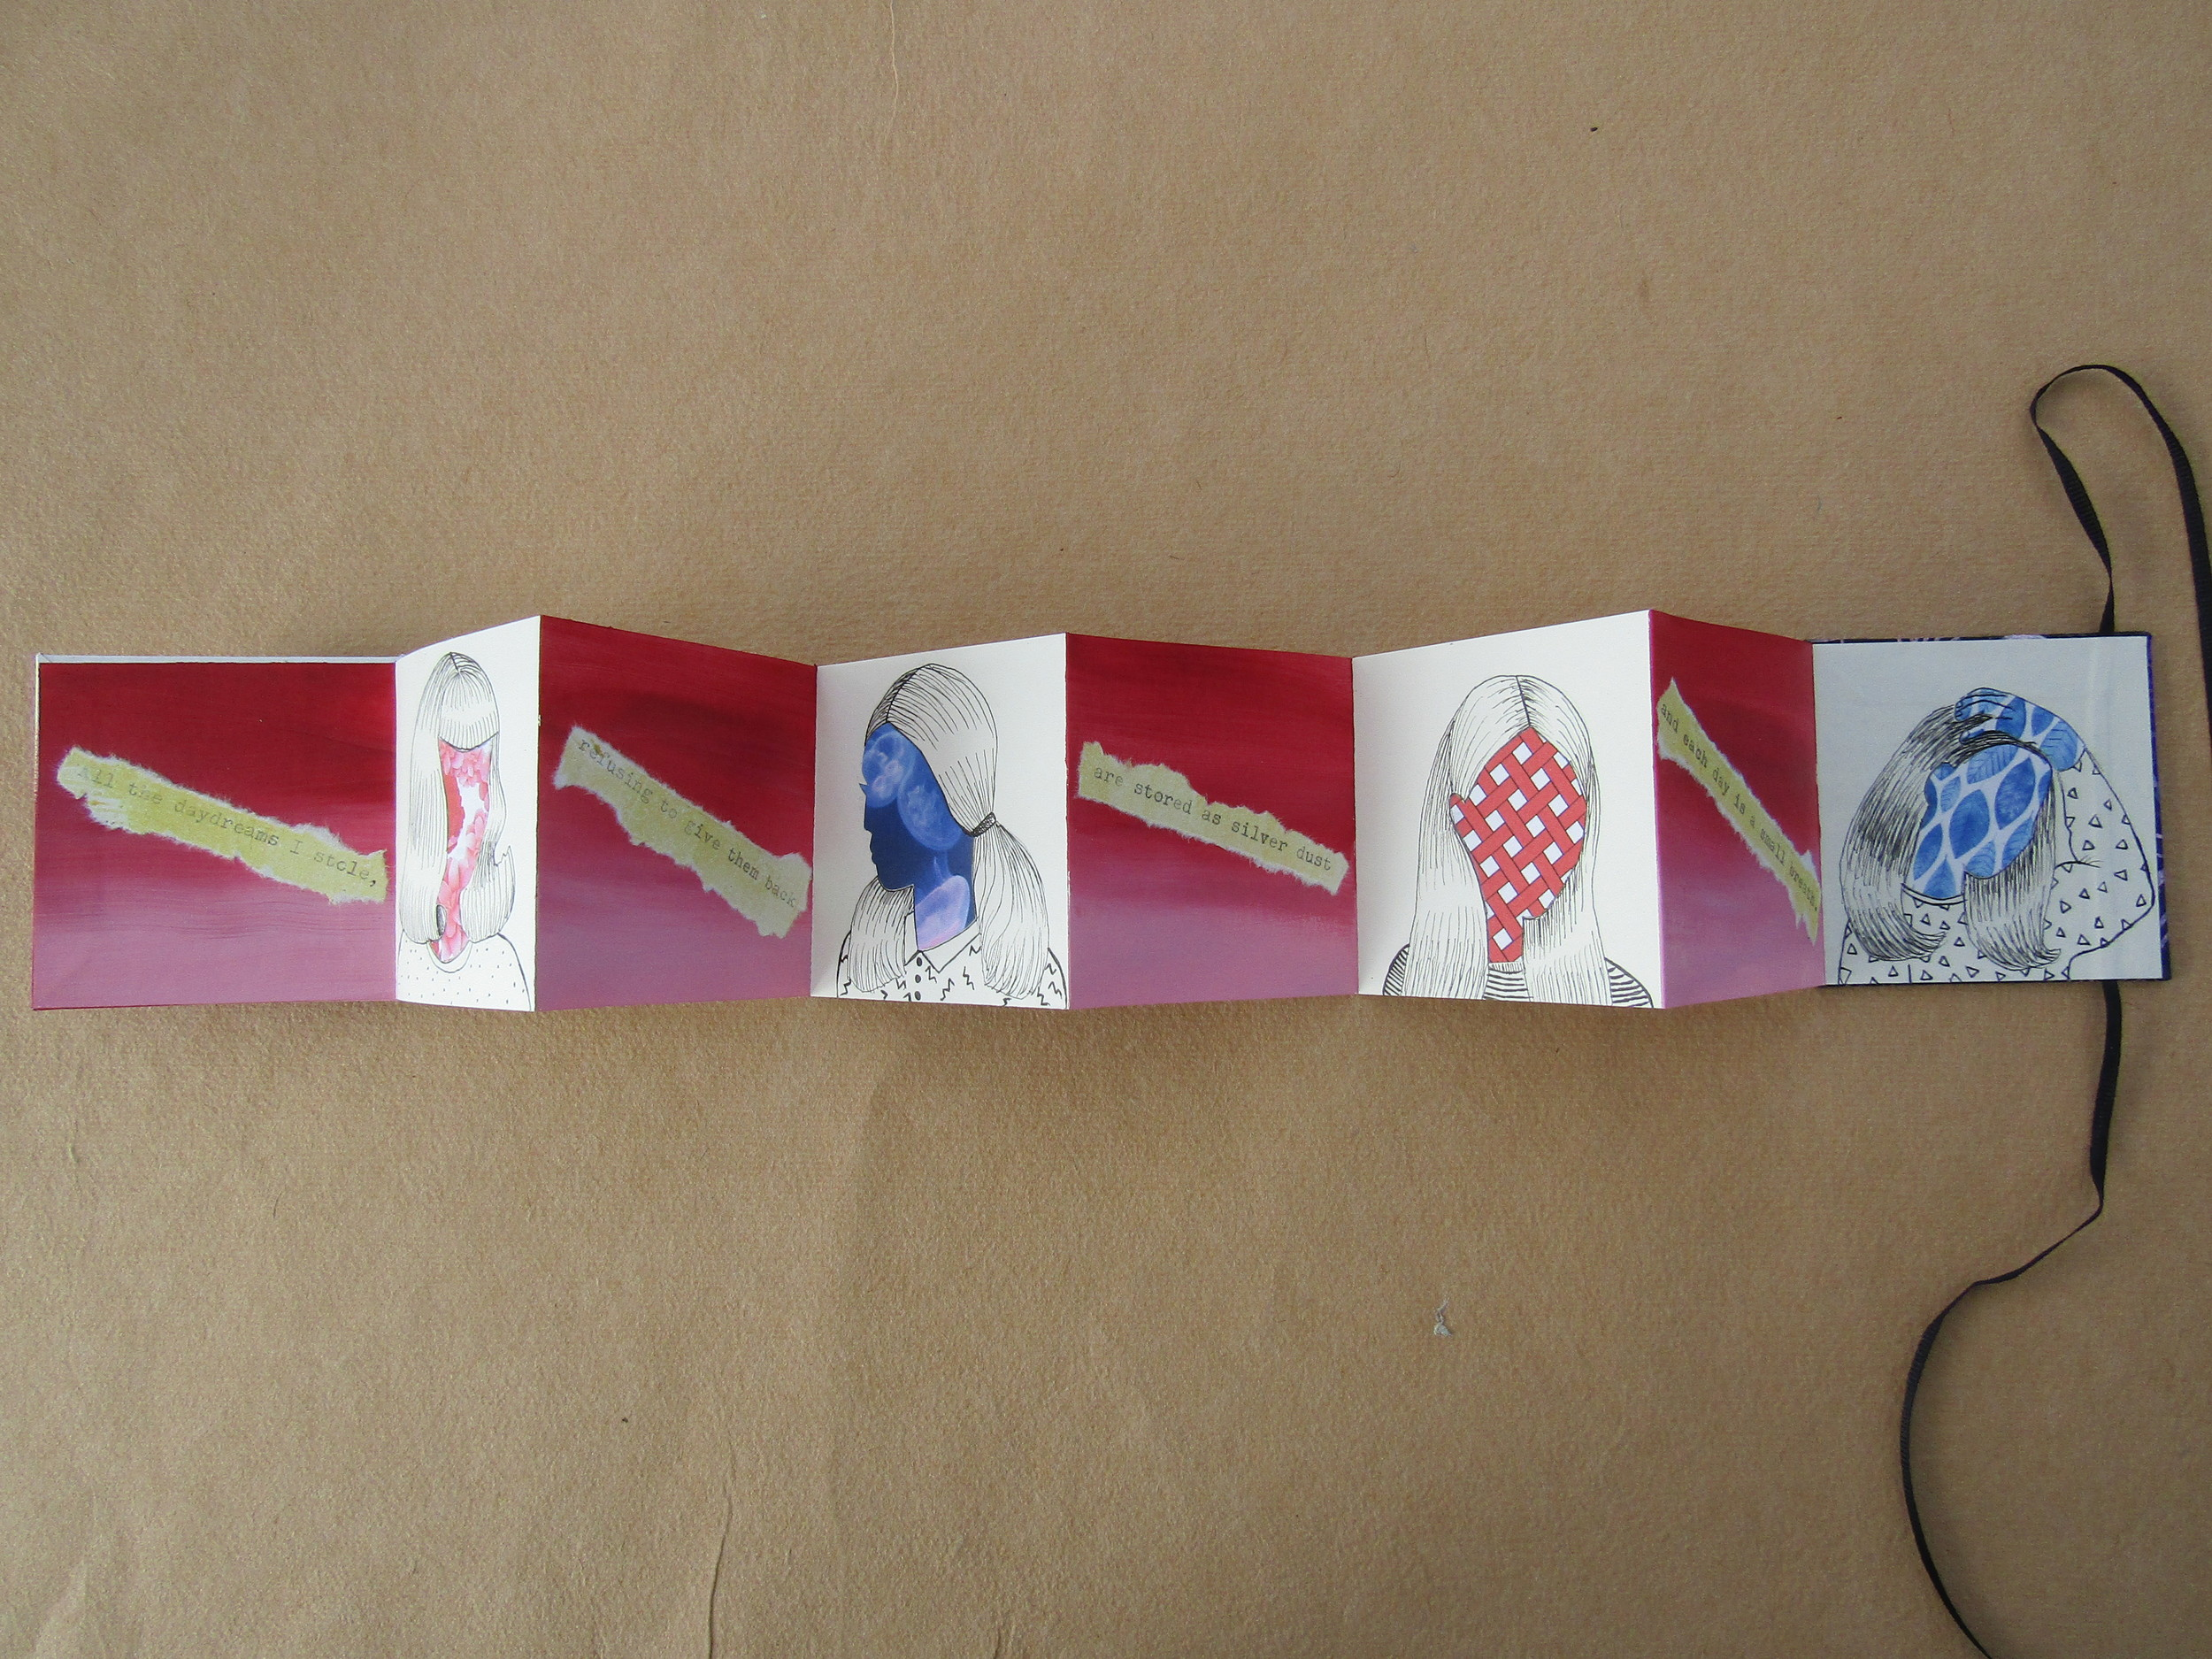 Accordion Book With Collaged Images